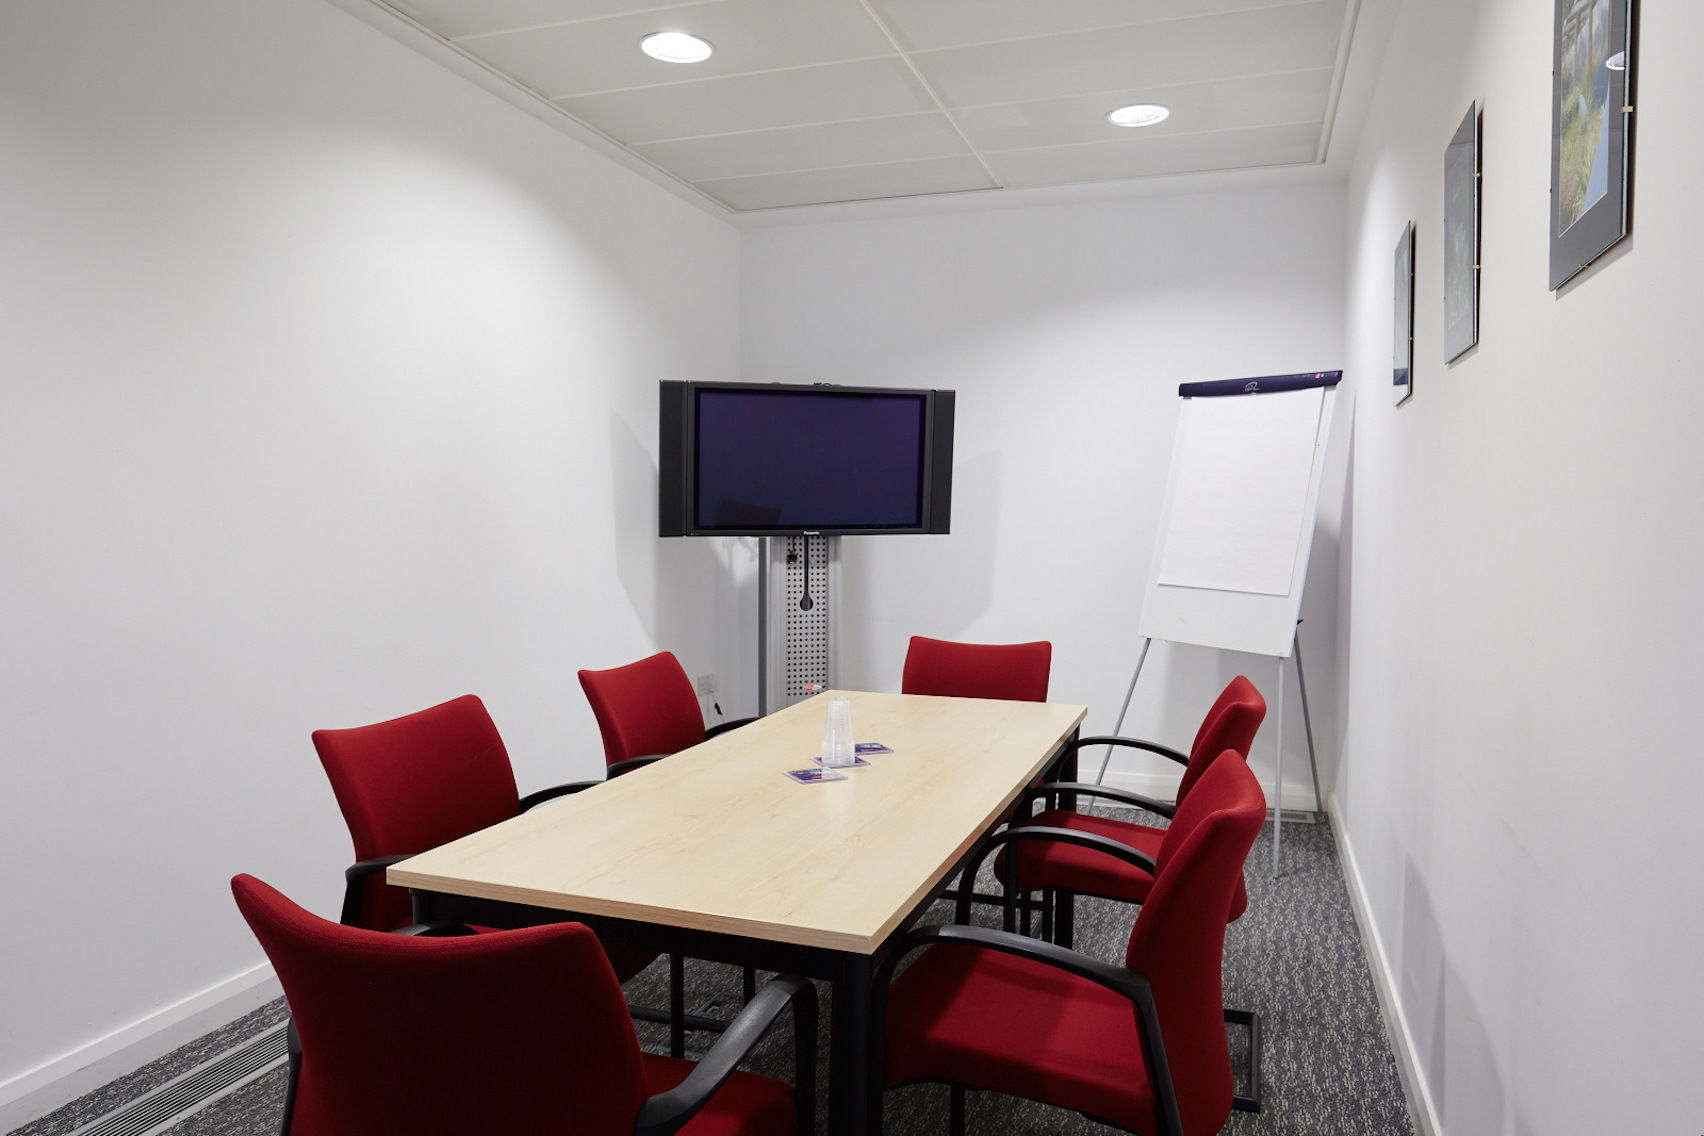 Meeting Room 2, Salford Innovation Forum